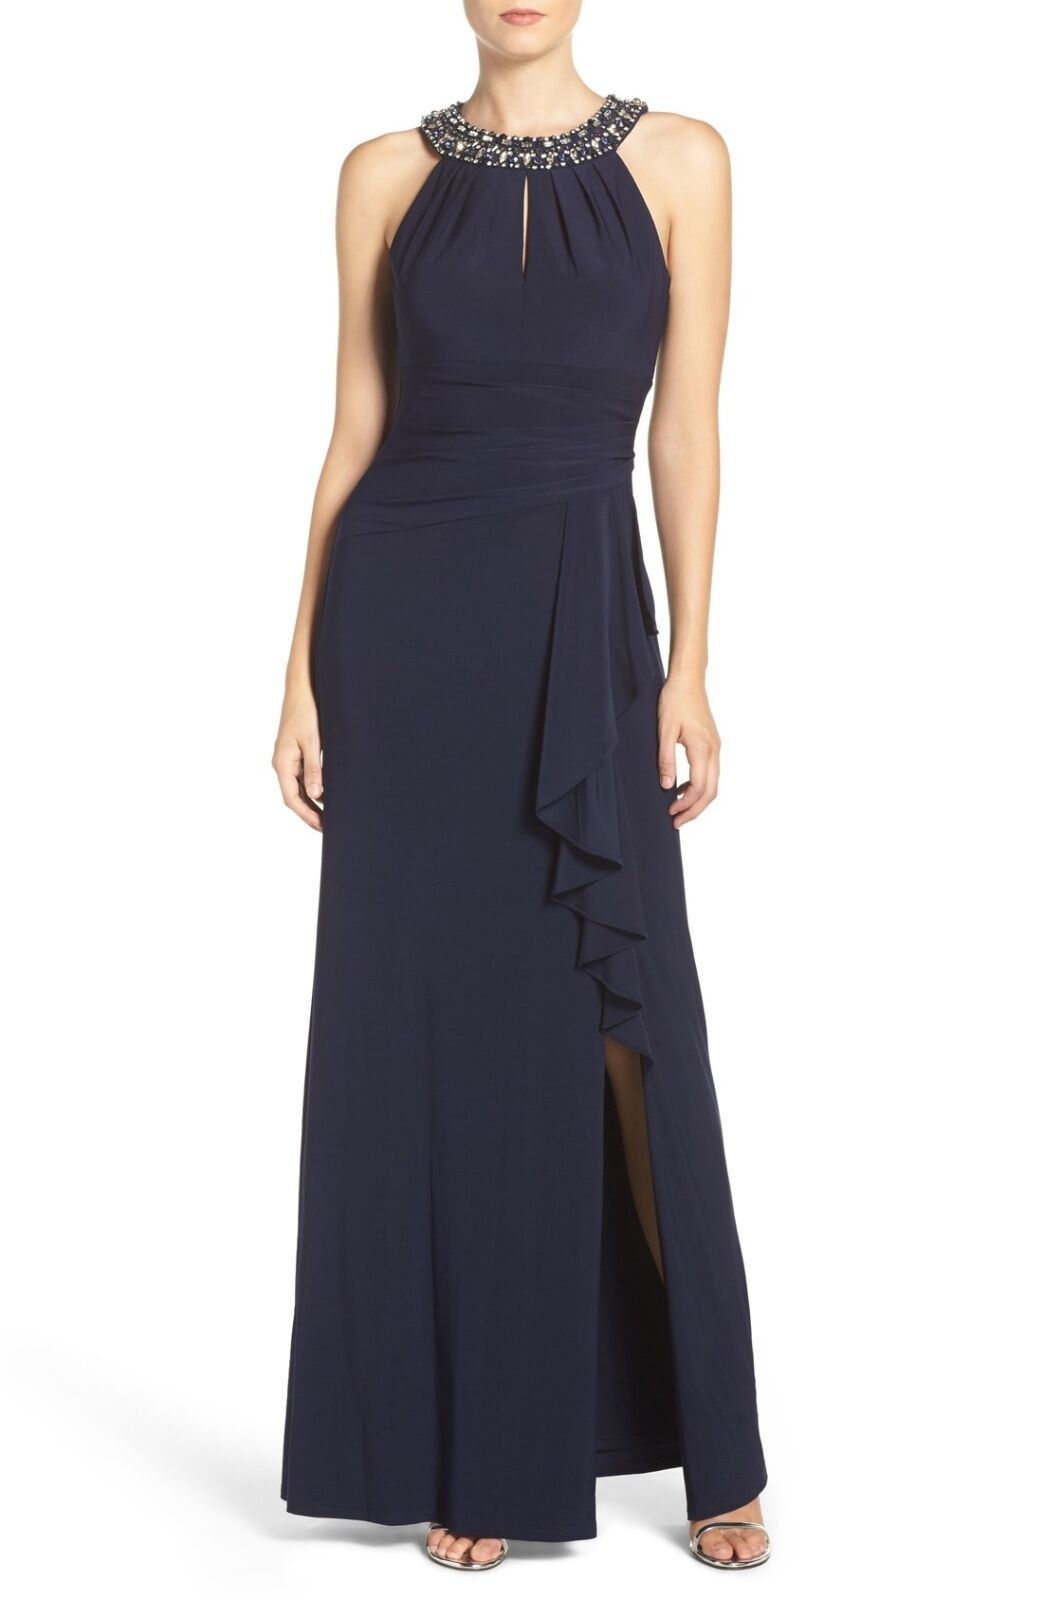 c1b55bf1e69 CAMUTO EMBELLISHED STRETCH NAVY sz 10 GOWN VINCE nckigh139-Kleider ...